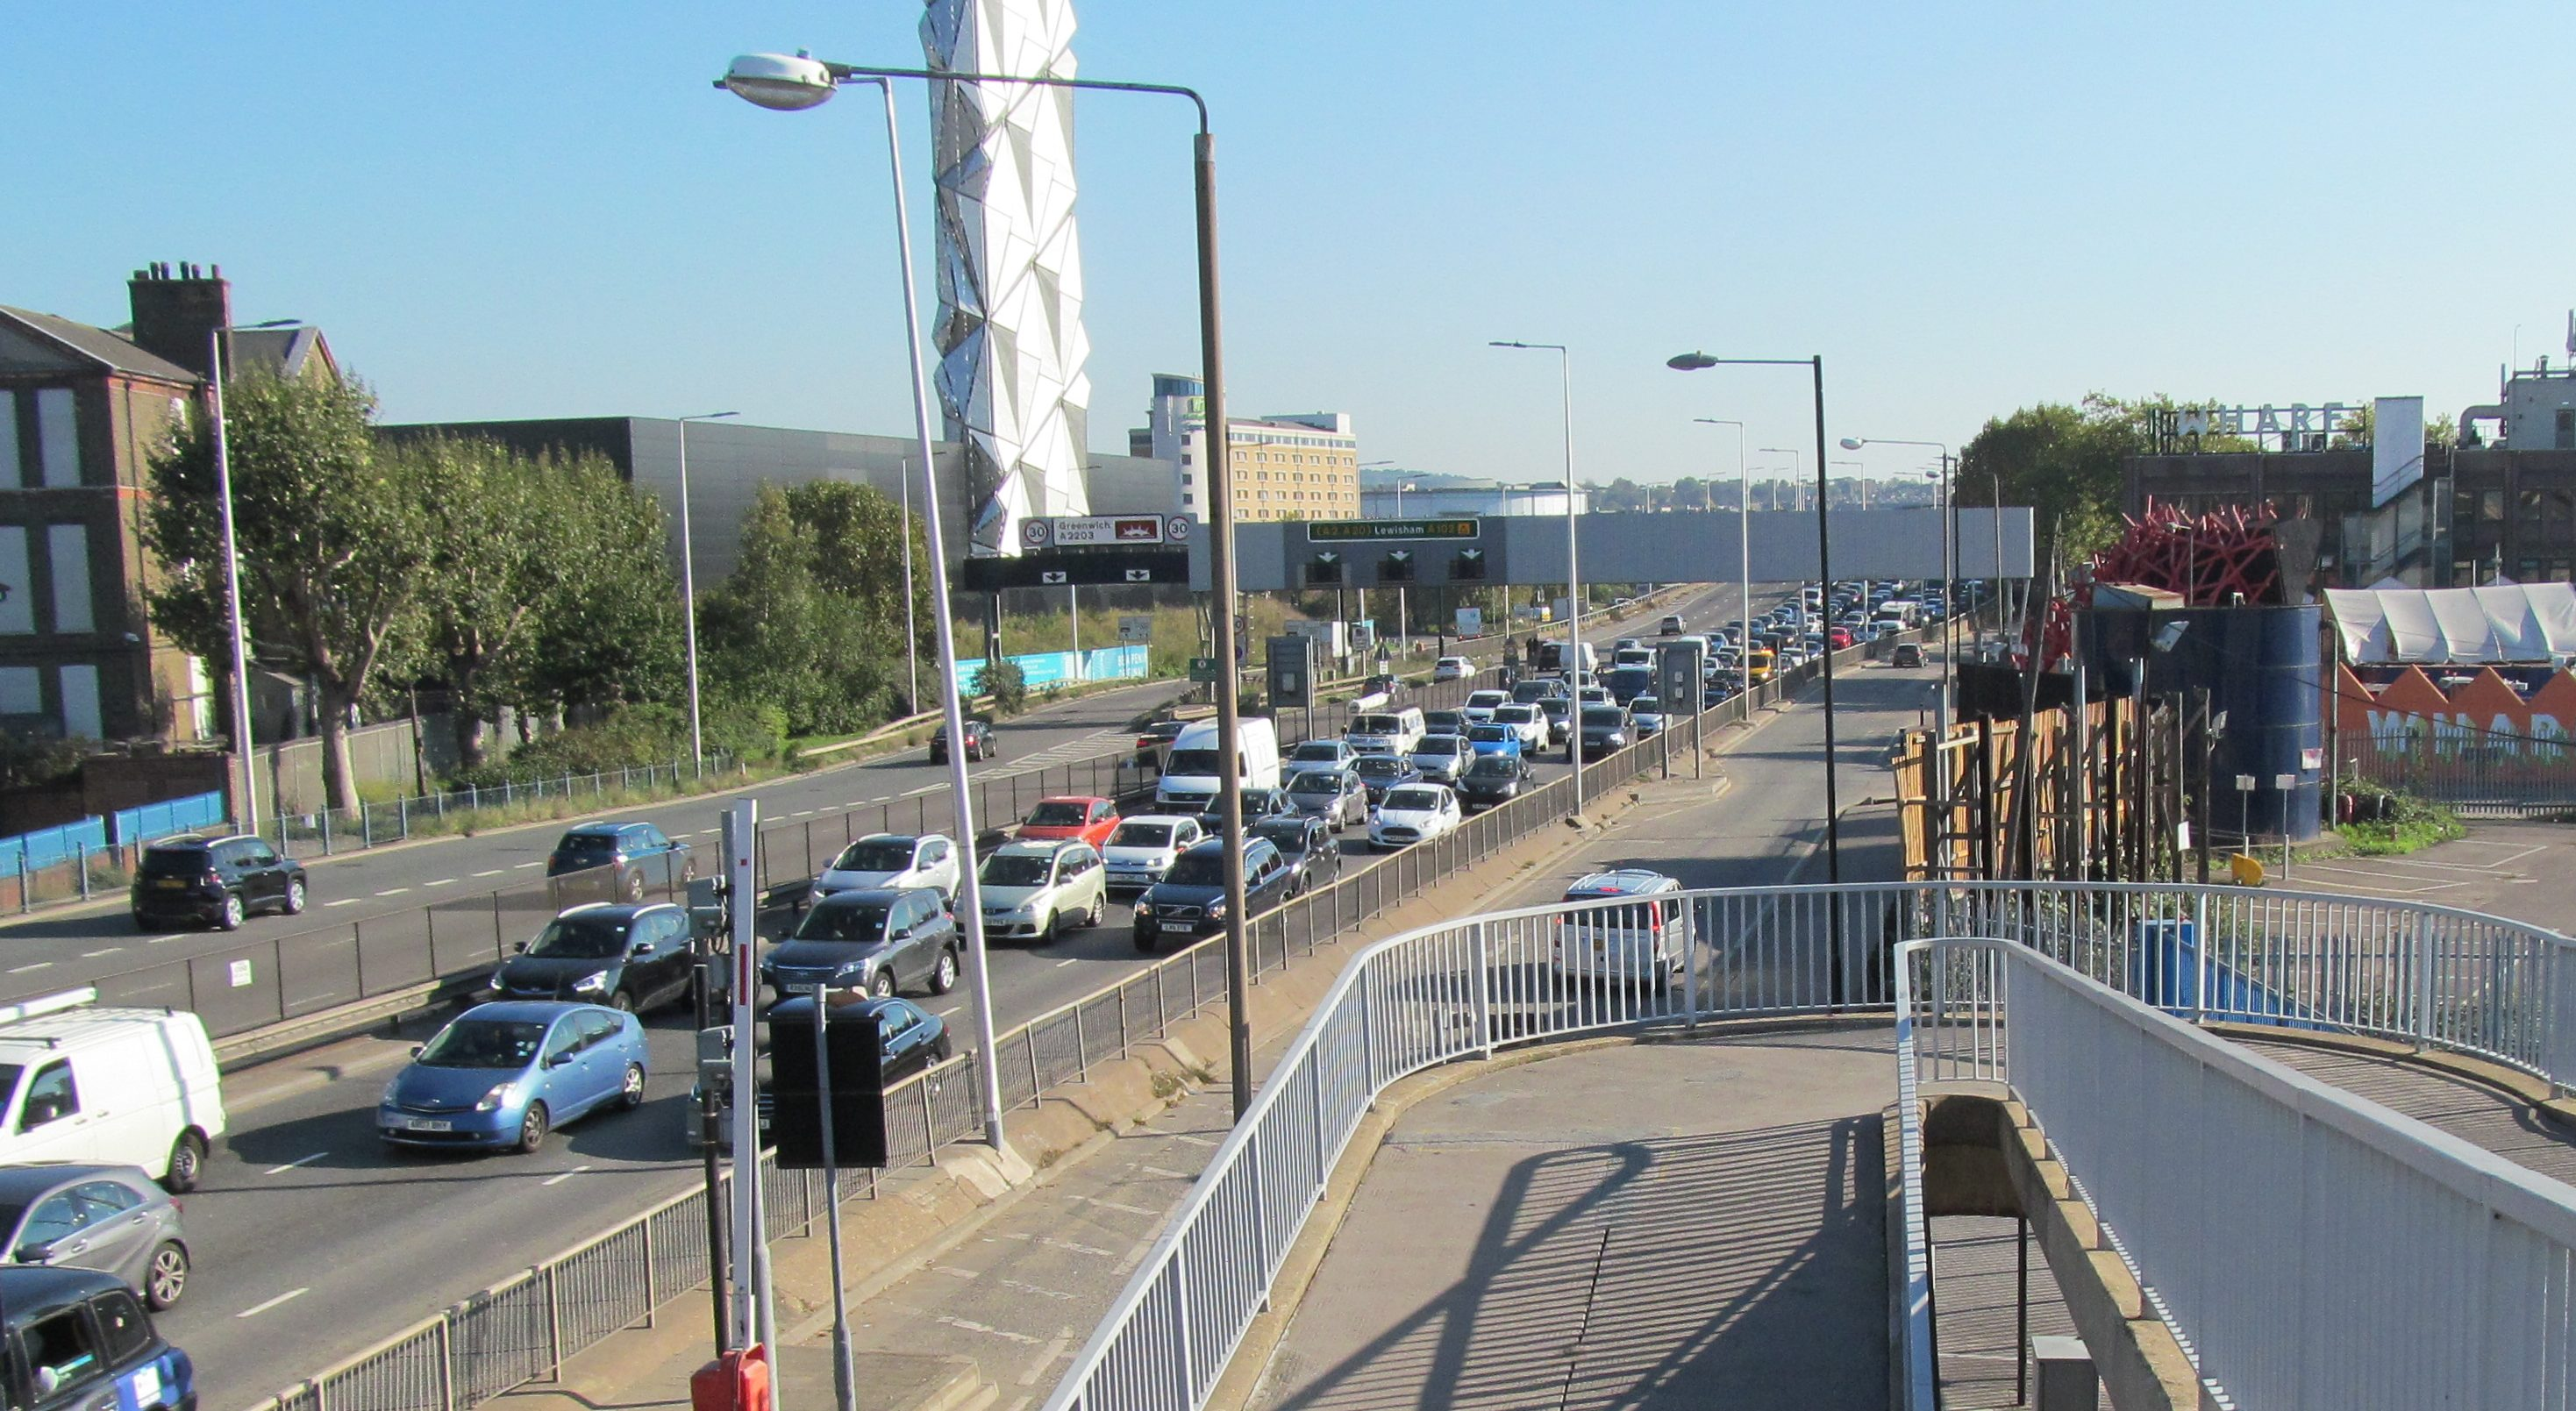 Barrier fault closes Blackwall Tunnel